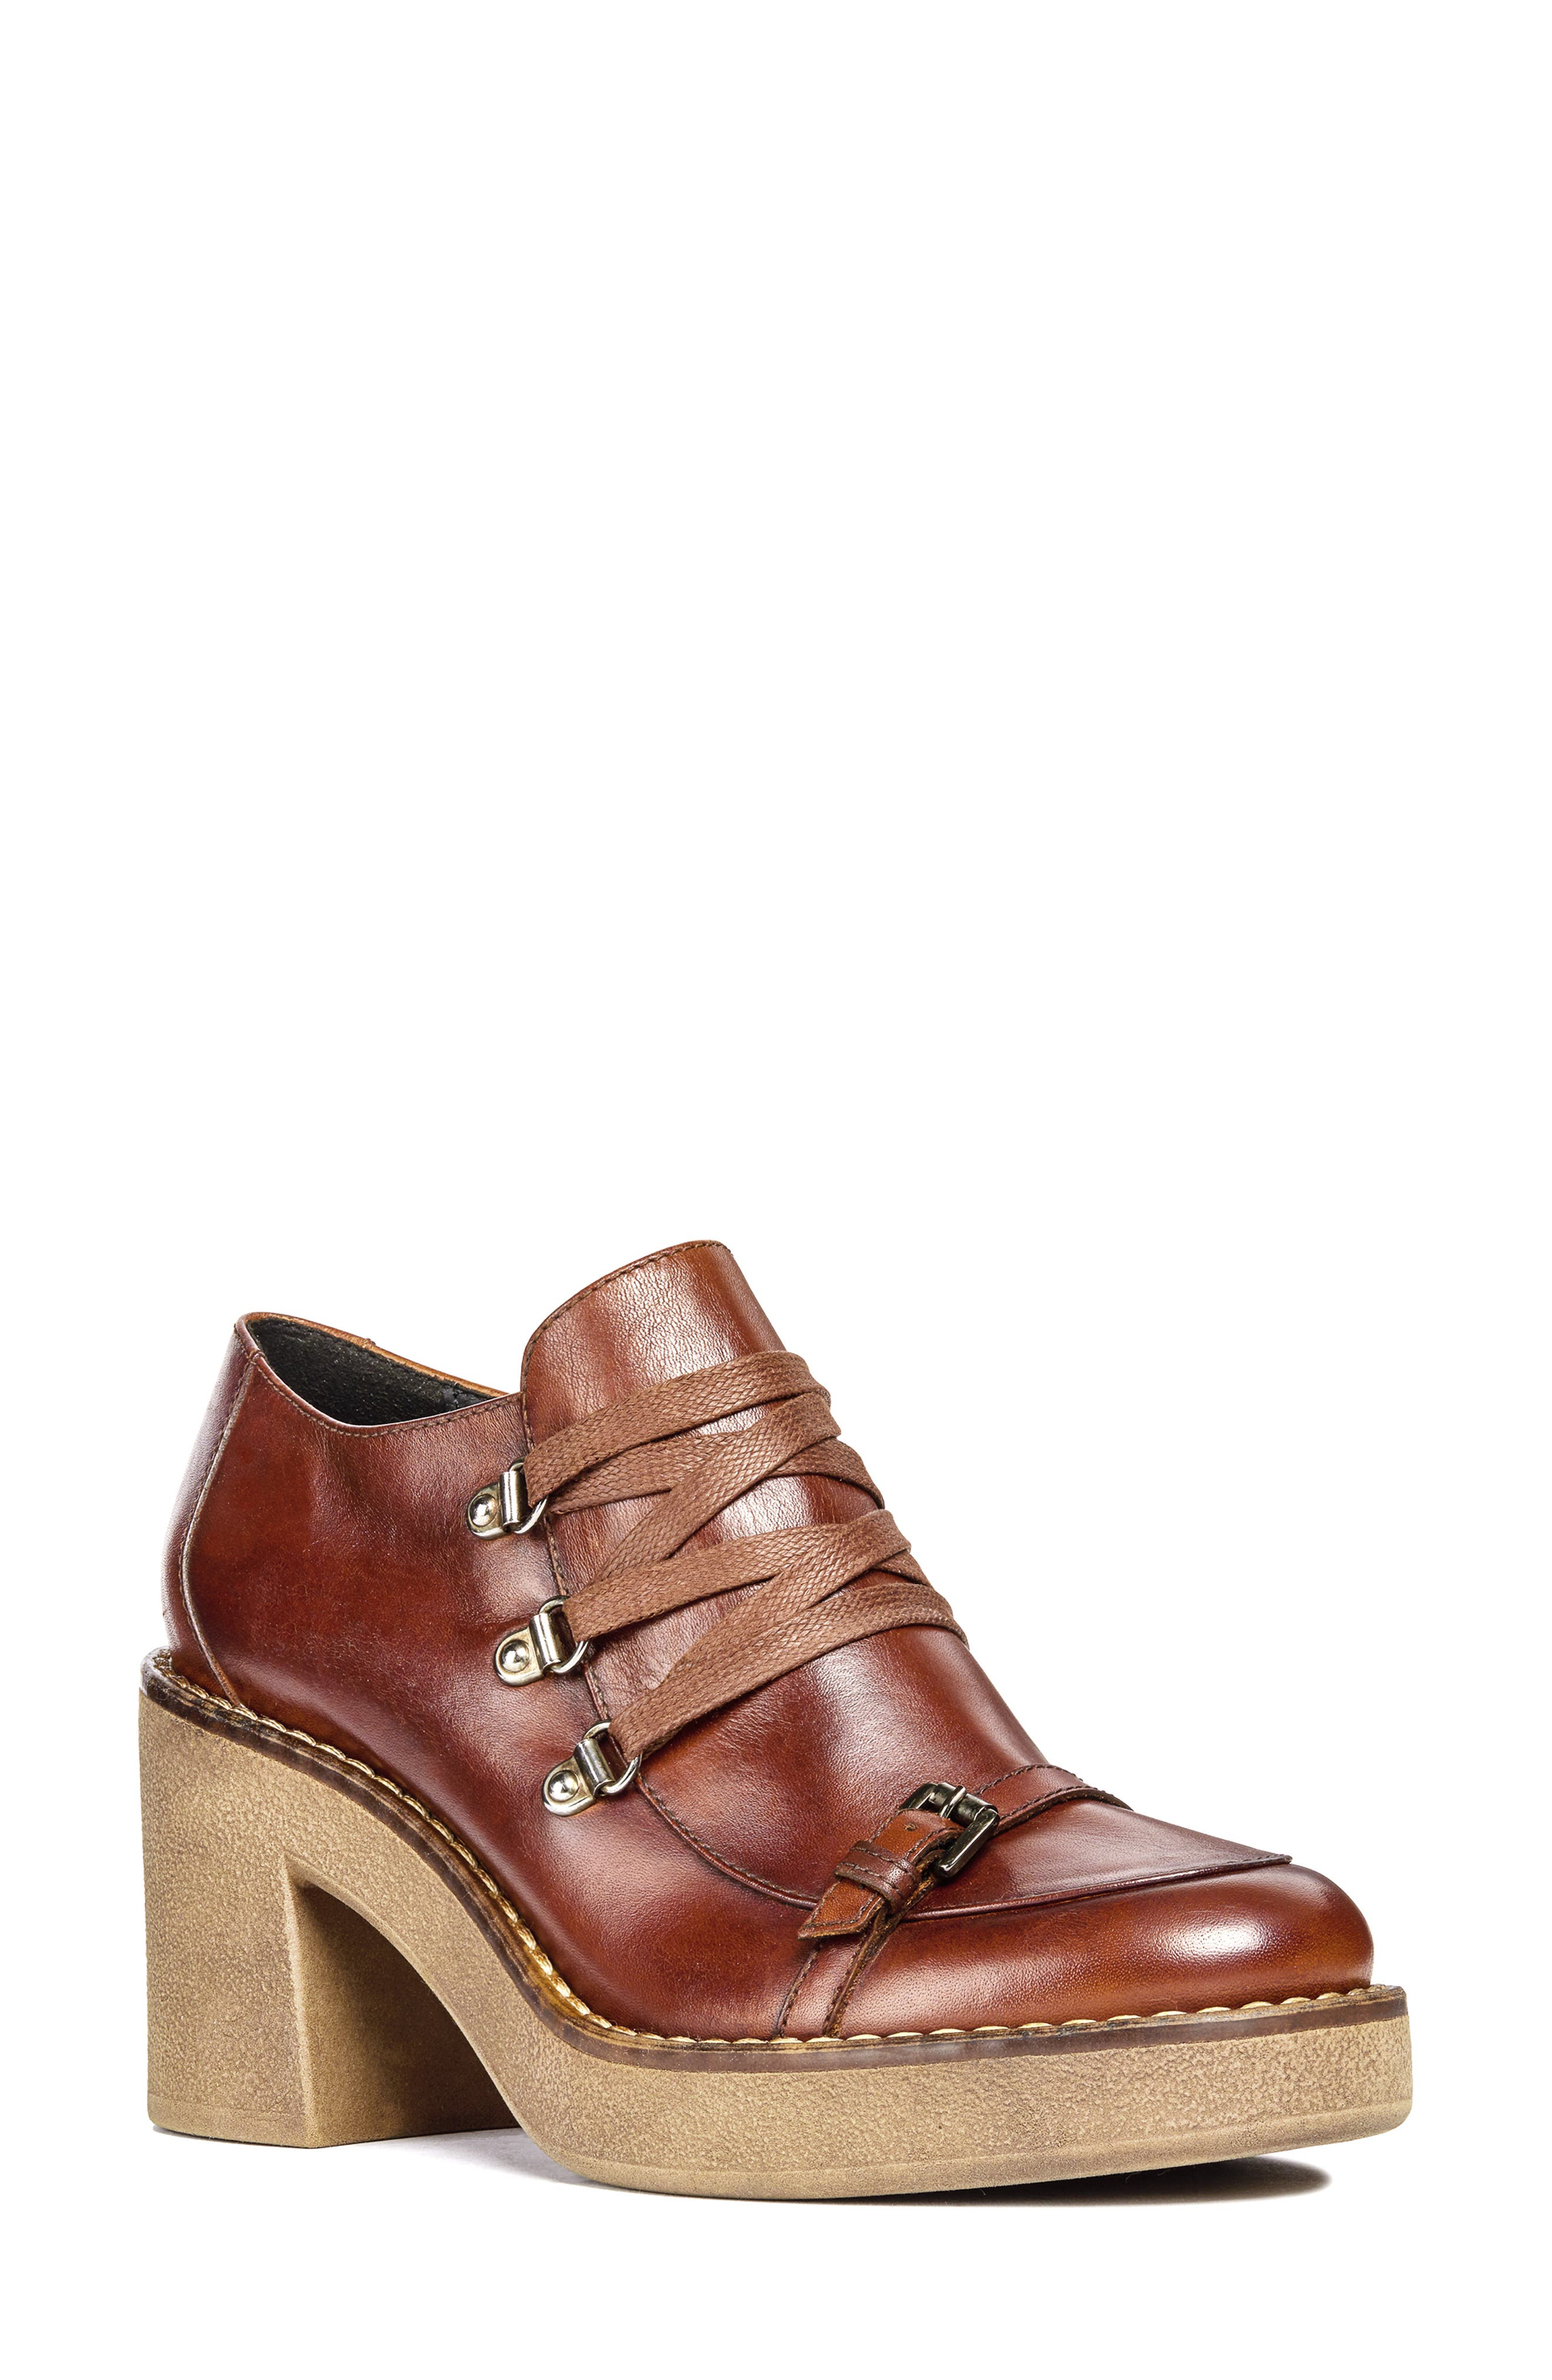 Adrya Bootie,                             Main thumbnail 1, color,                             BROWN LEATHER